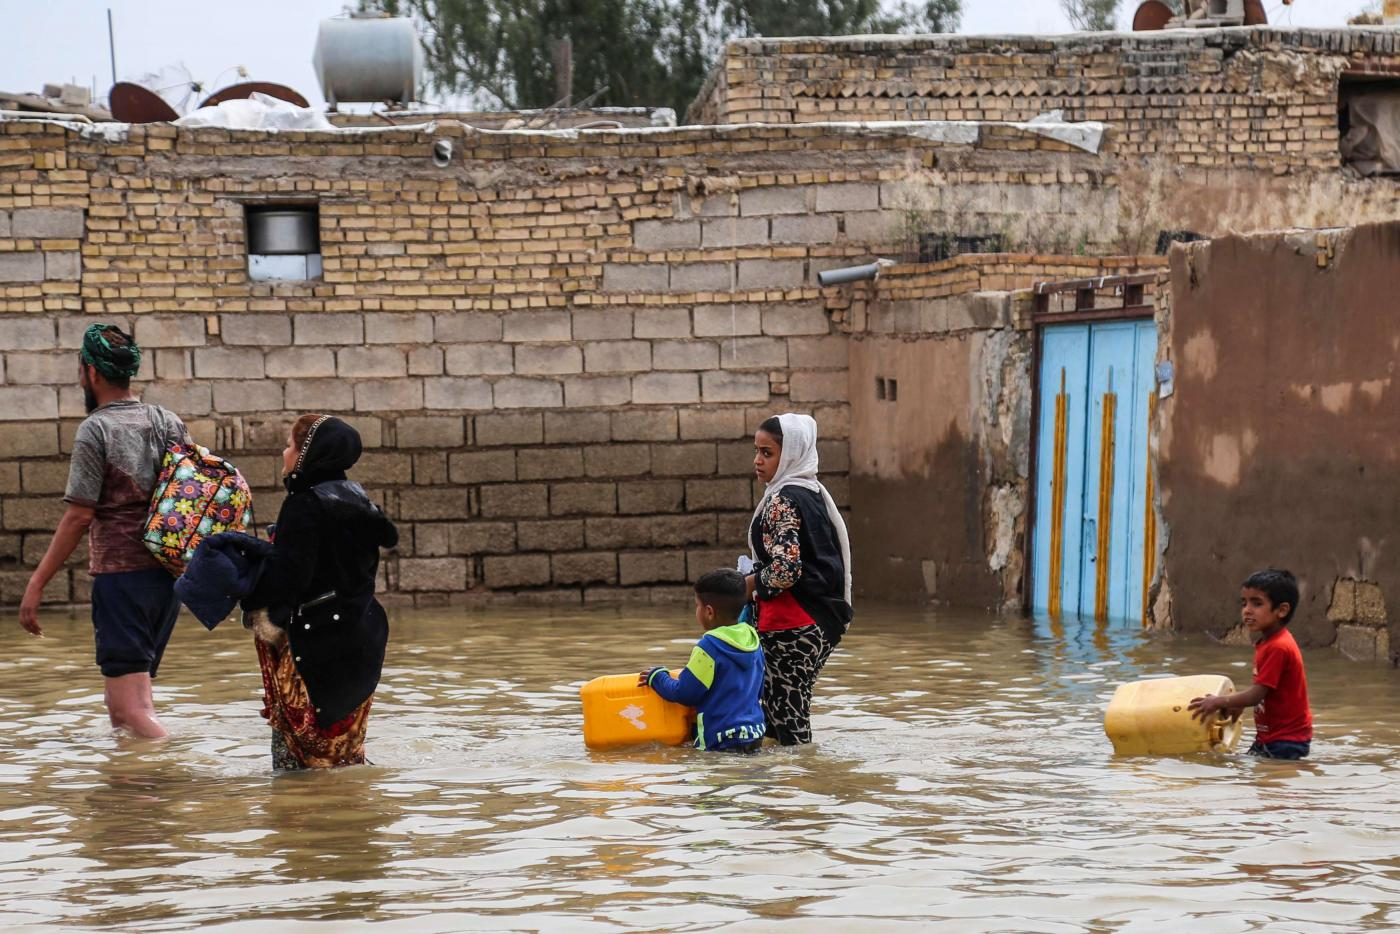 Tens of thousands of Iranians have lost their homes due to flash floods across the country